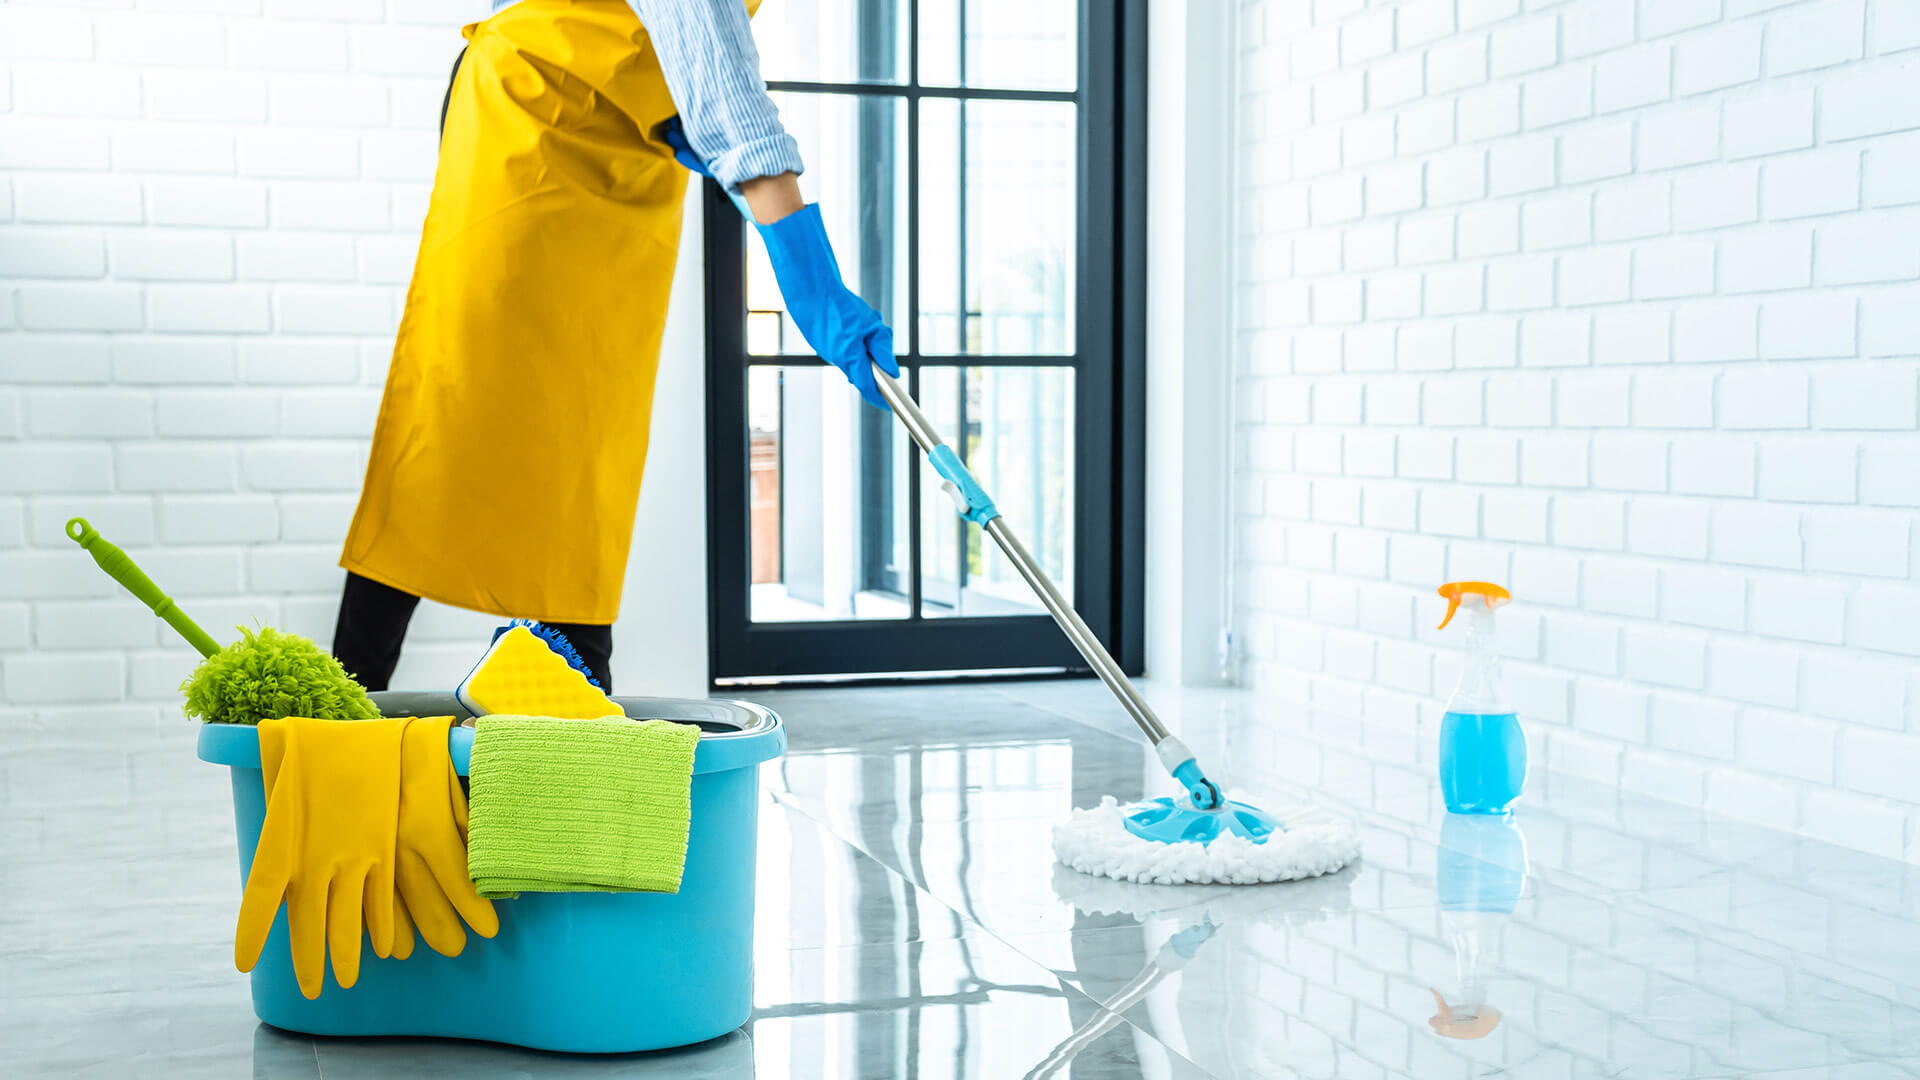 How do you find a good cleaning company (entreprise de nettoyage) that meets your needs?